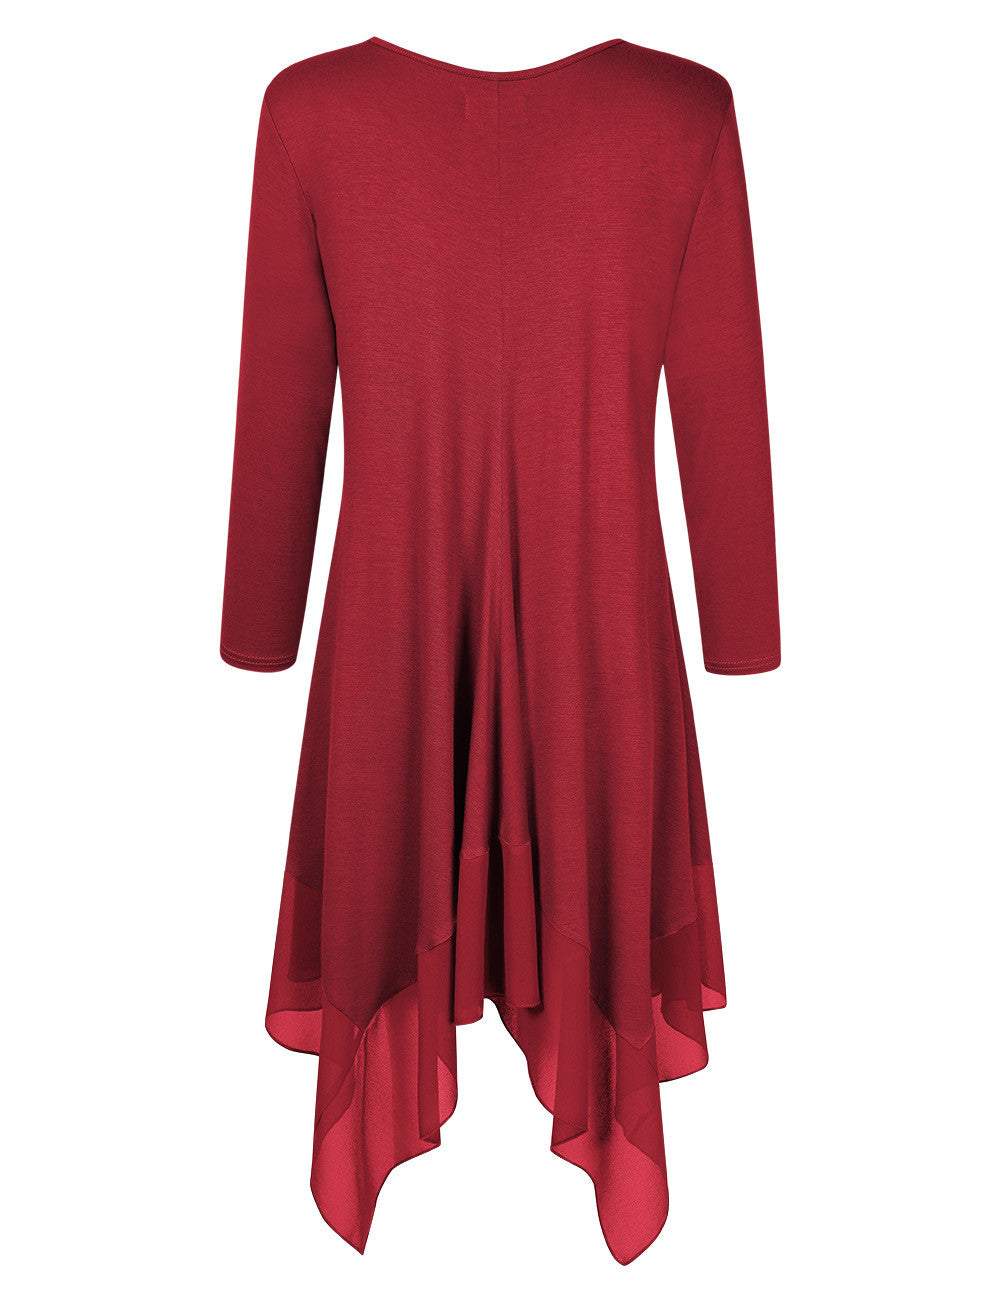 Scarf-like Hem Long Sleeve Loose Shirt Dress or Top